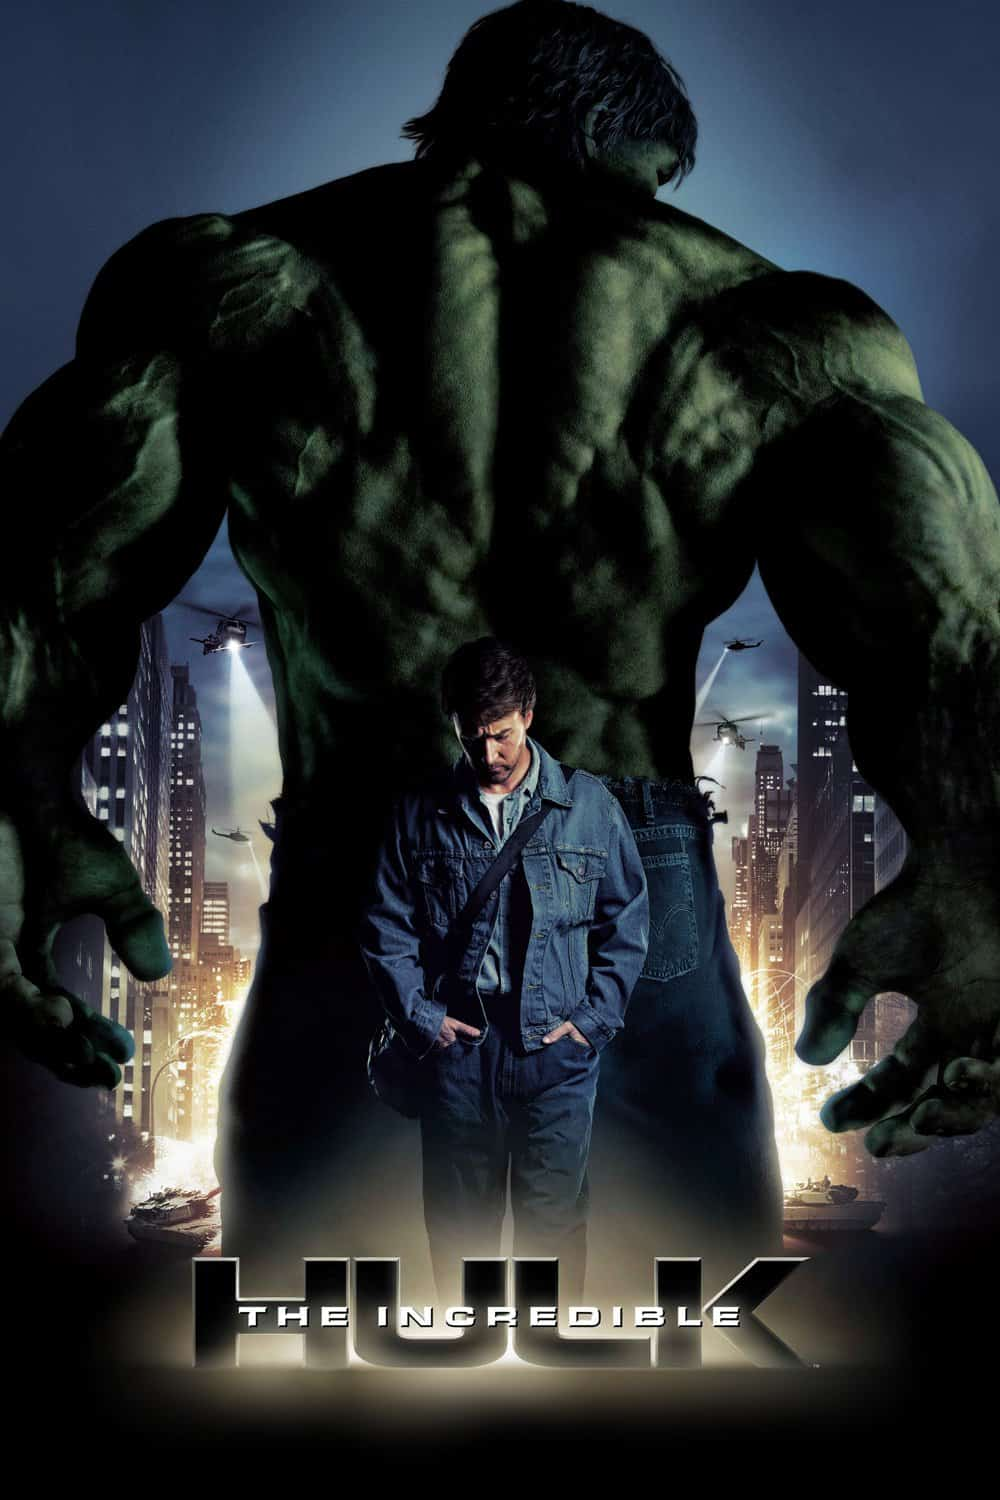 The Incredible Hulk, 2008